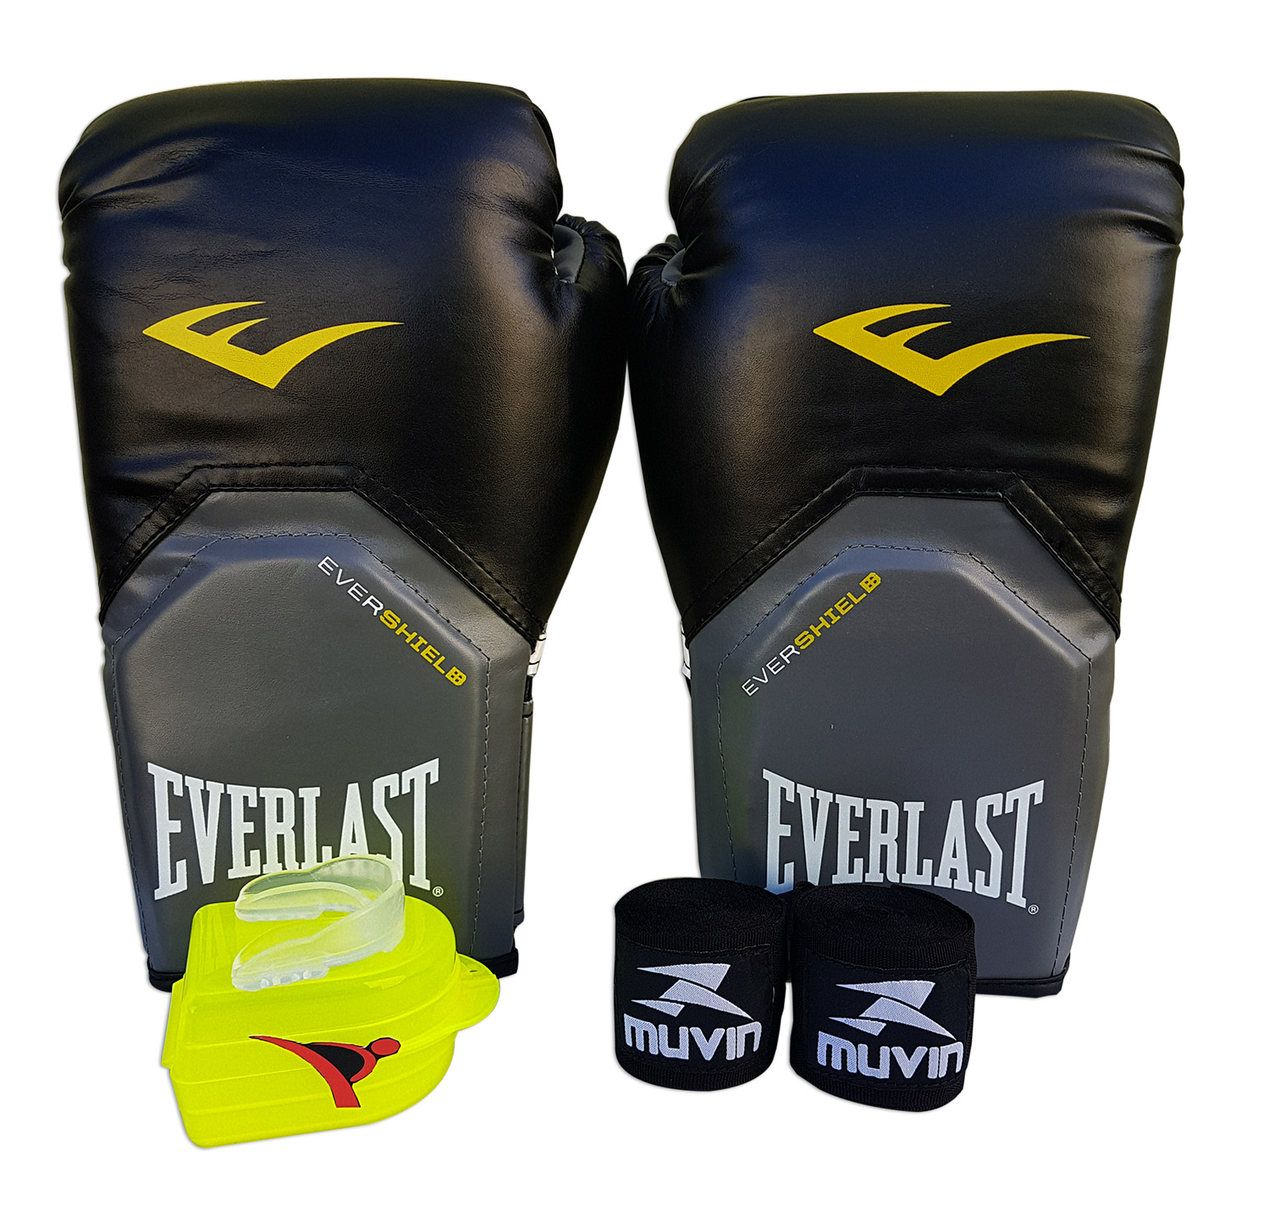 Kit de Boxe / Muay Thai 08oz - Preto - Pro Style - Everlast  - PRALUTA SHOP